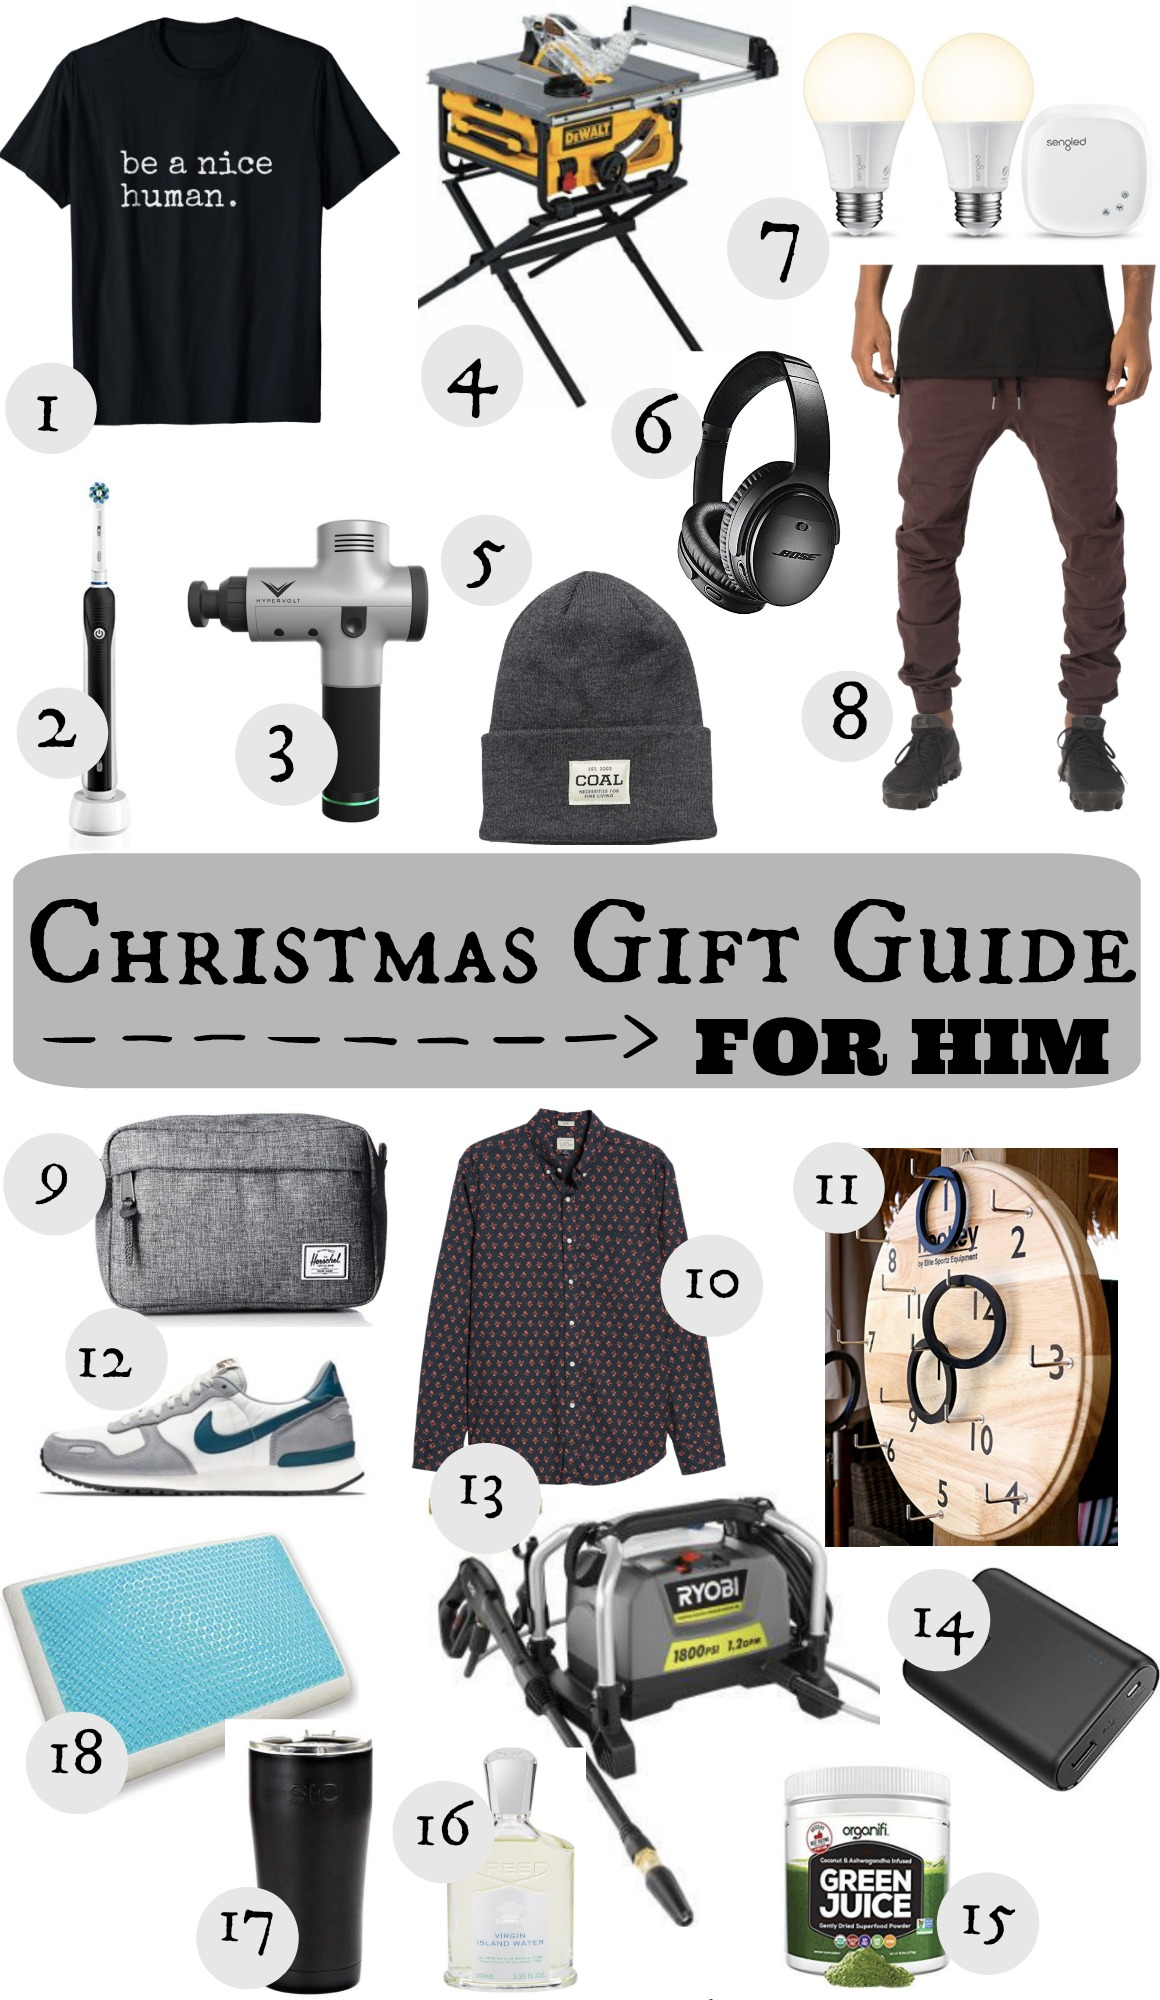 Best Christmas Gifts For Him.Best Christmas Gifts 2018 For Boyfriend Best Christmas Gift